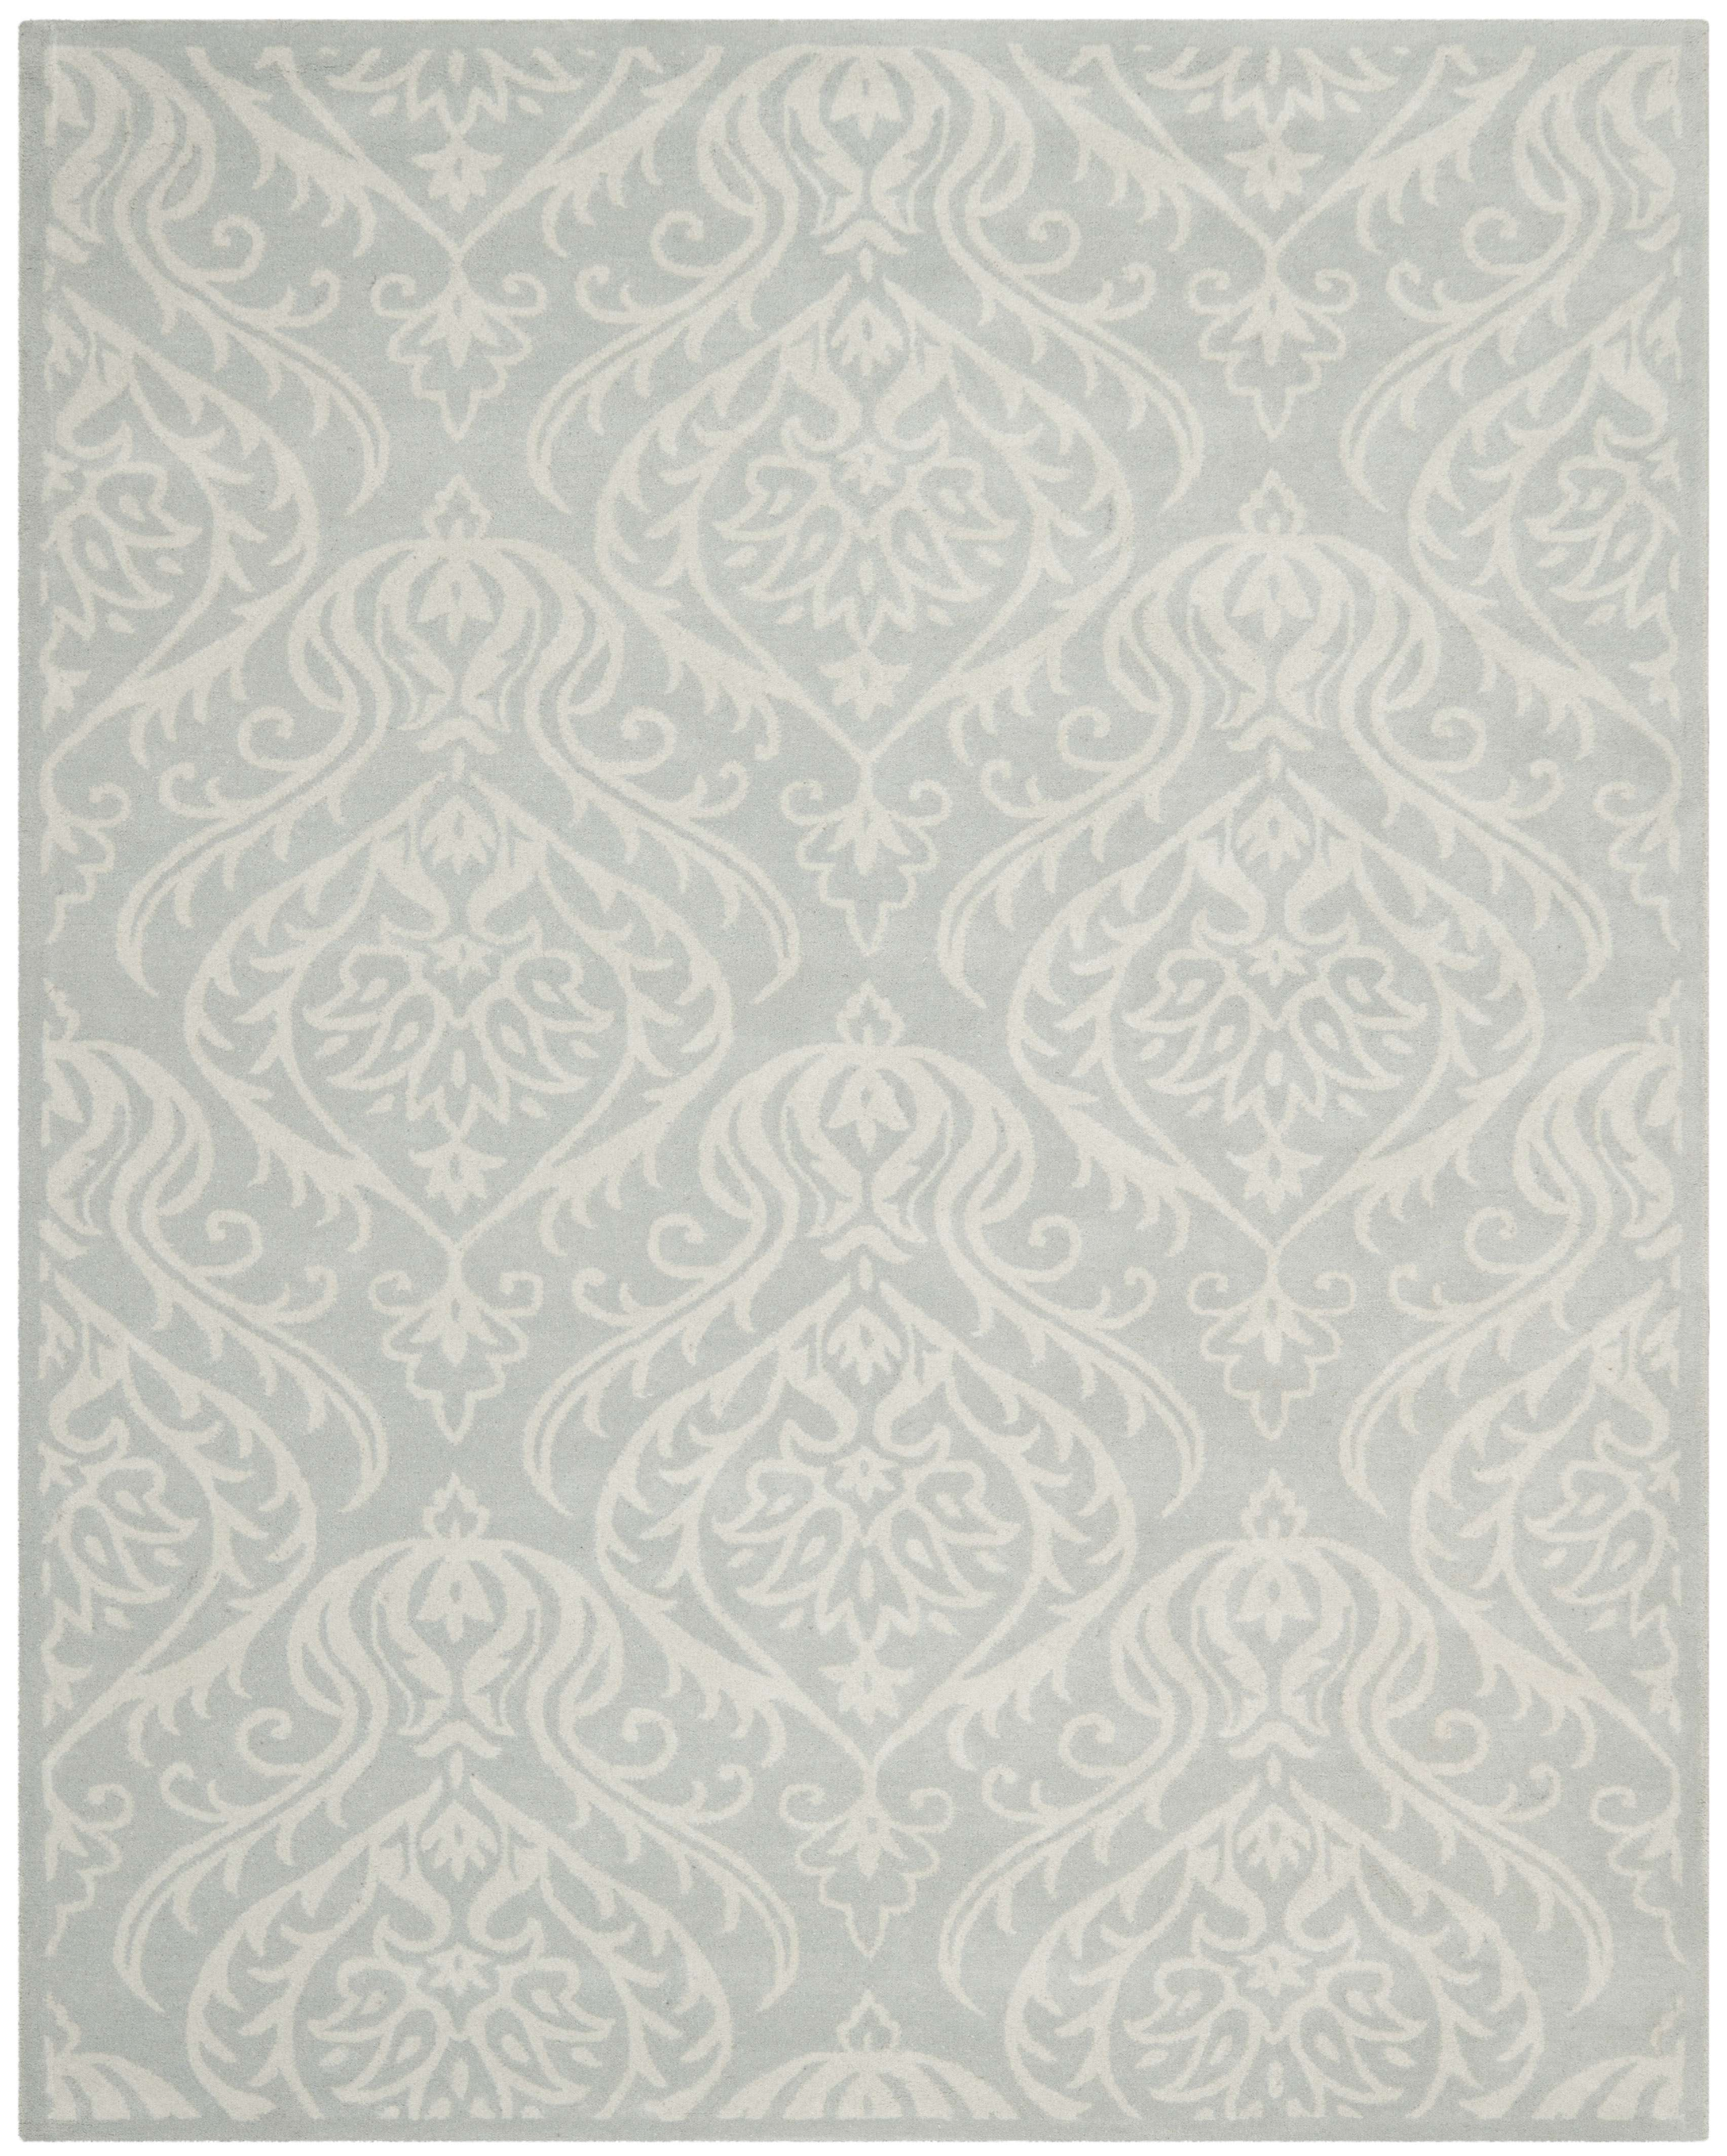 9229d4174 BEL445A-6 by Safavieh - Rugs and Floor Mats